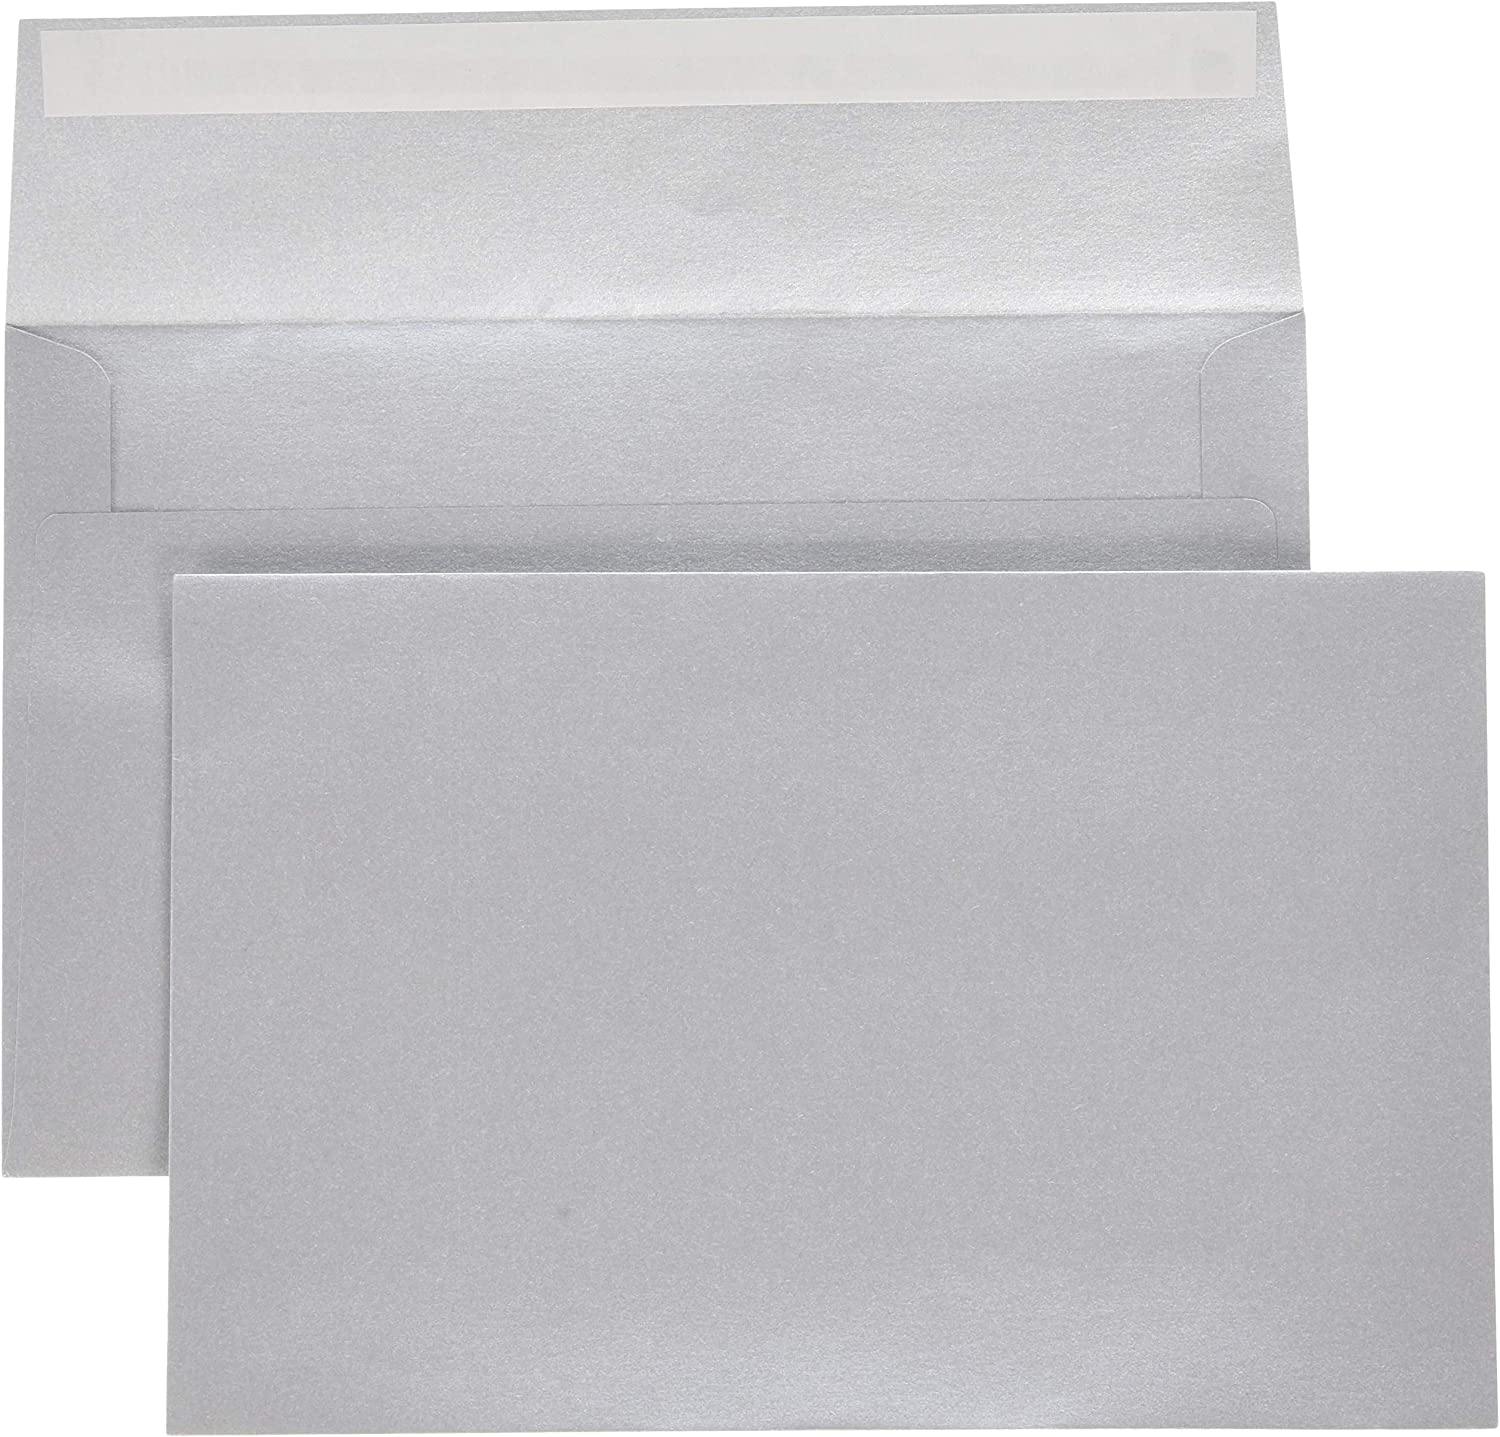 LUXPaper A9 Invitation Envelopes in 80 lb. Silver Metallic for 5 1/2 x 8 1/2 Cards, Printable Envelopes for Invitations, with Peel and Press, 50 Pack, Envelope Size 5 3/4 x 8 3/4 (Silver)